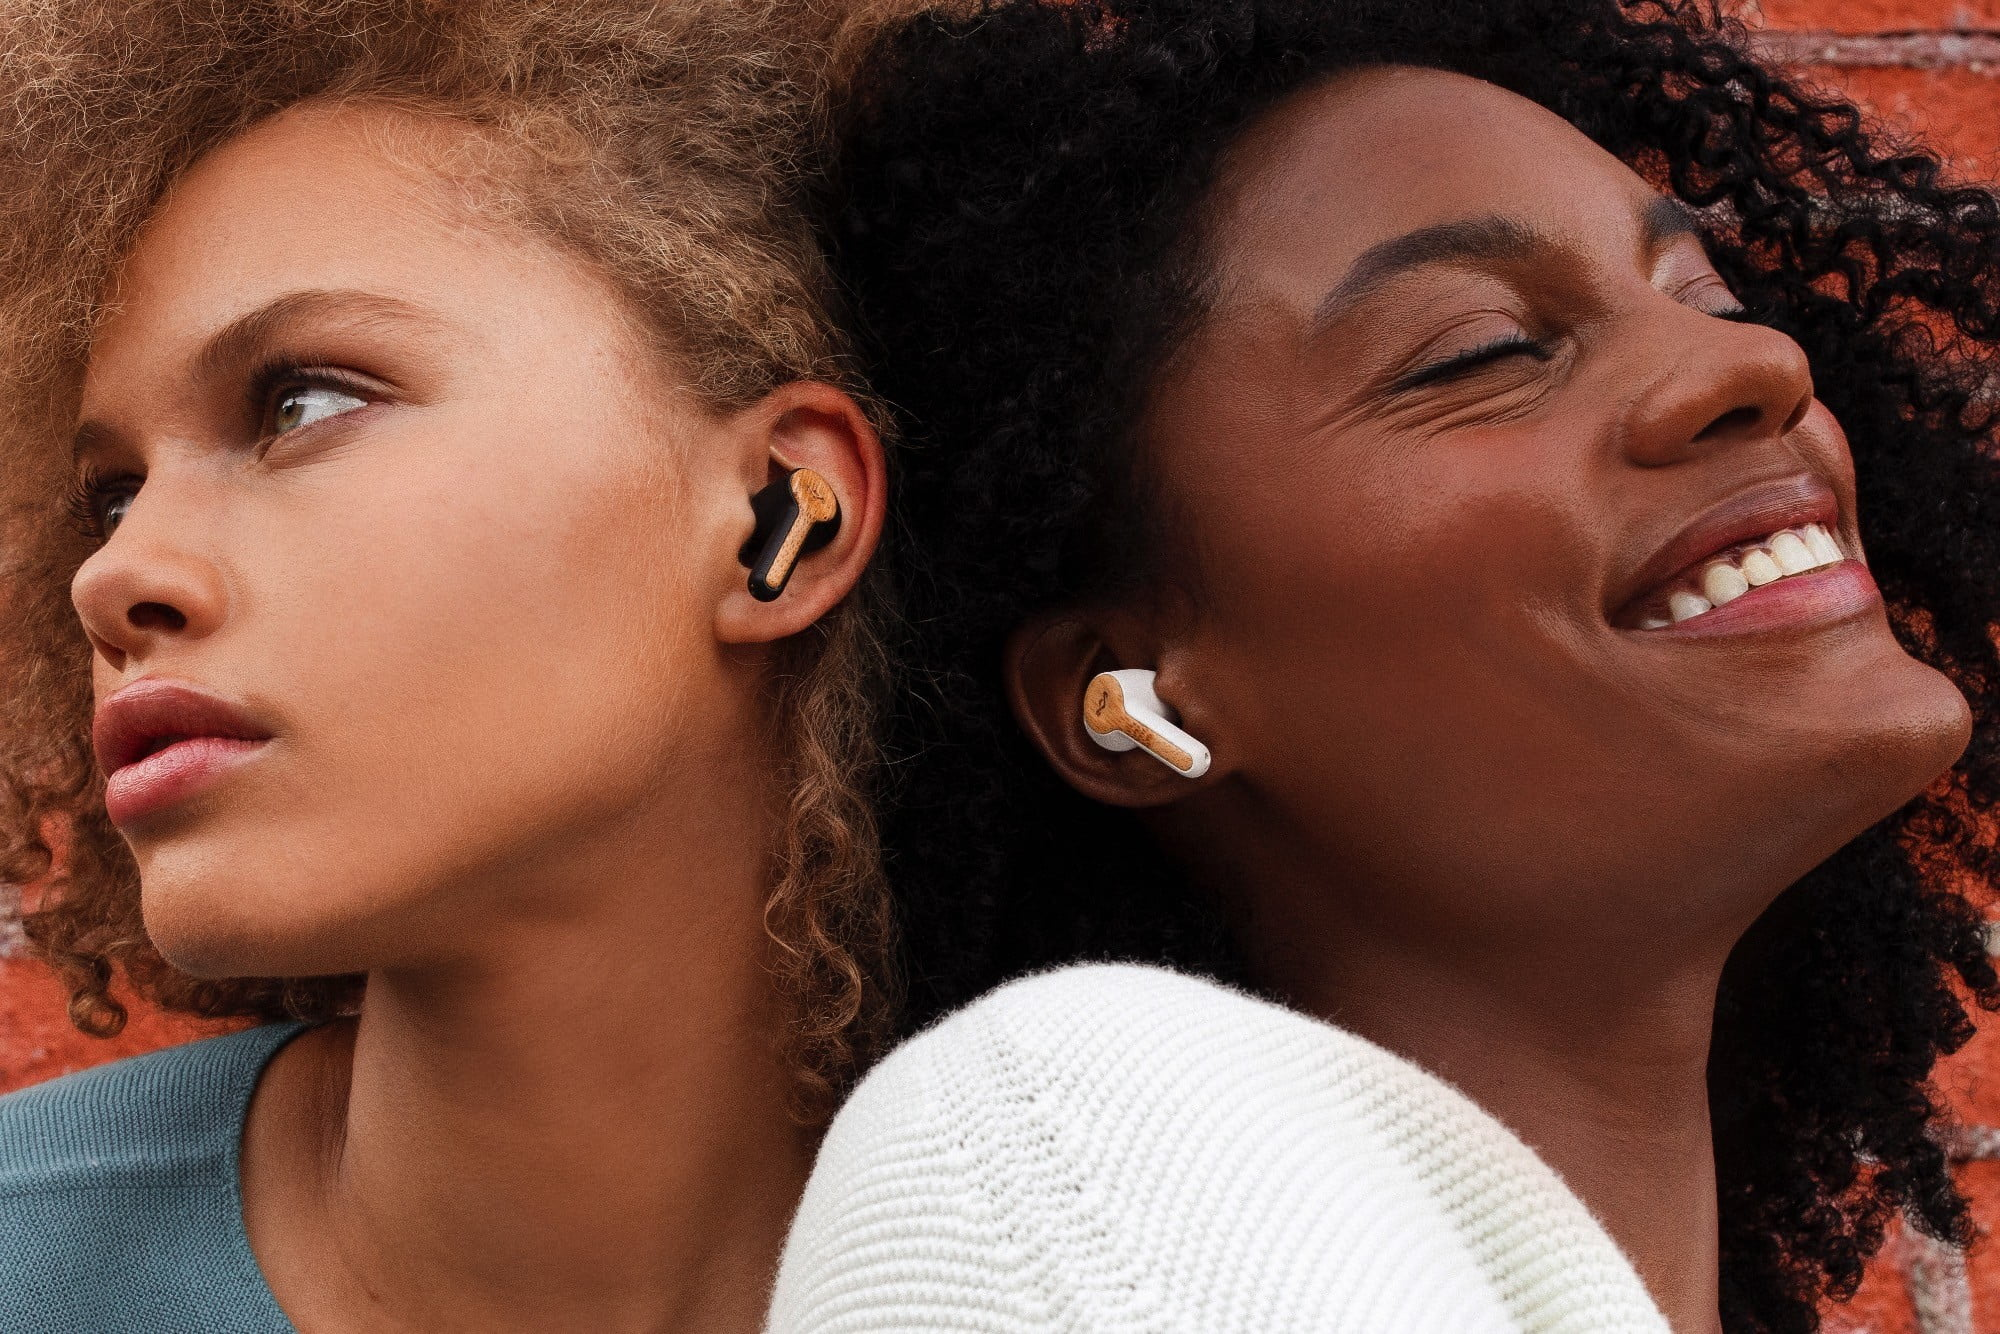 House of Marley continues its eco-friendly theme with its 0 Rebel earbuds